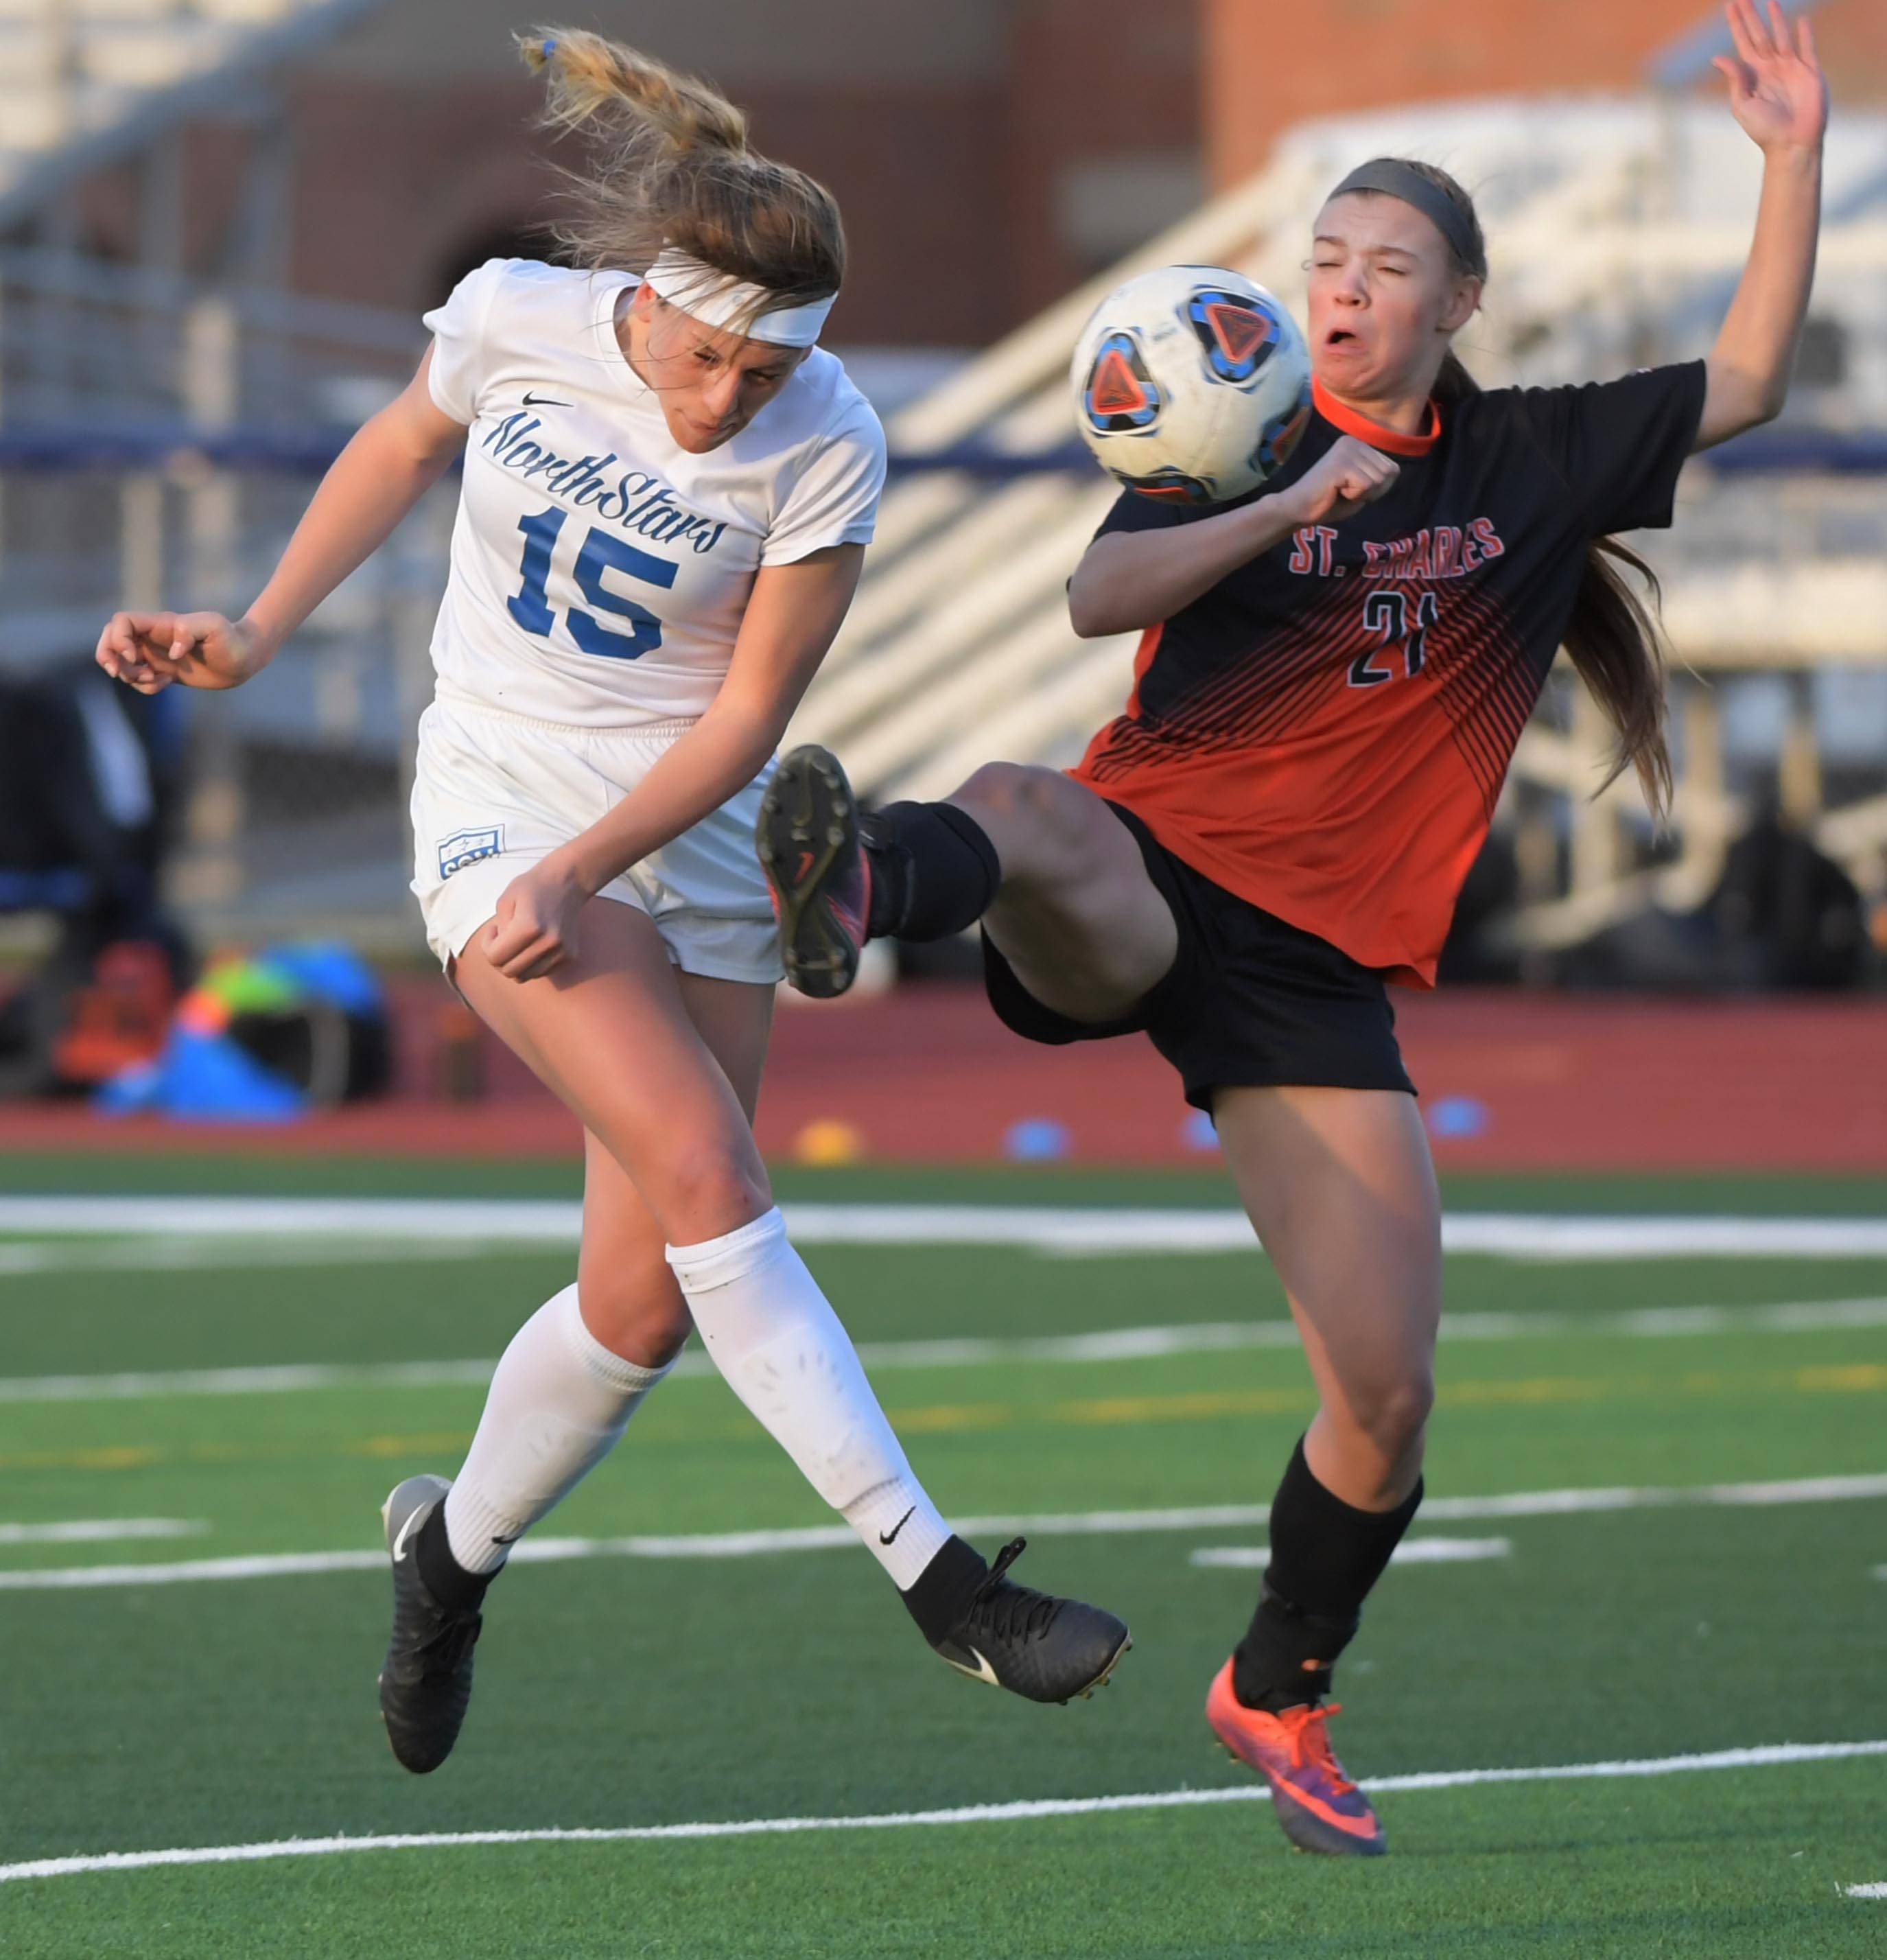 St. Charles North's Gia Wahlberg heads the ball for a goal against St. Charles East's Megan Stout in the first half of a girls soccer game at North High School Tuesday.